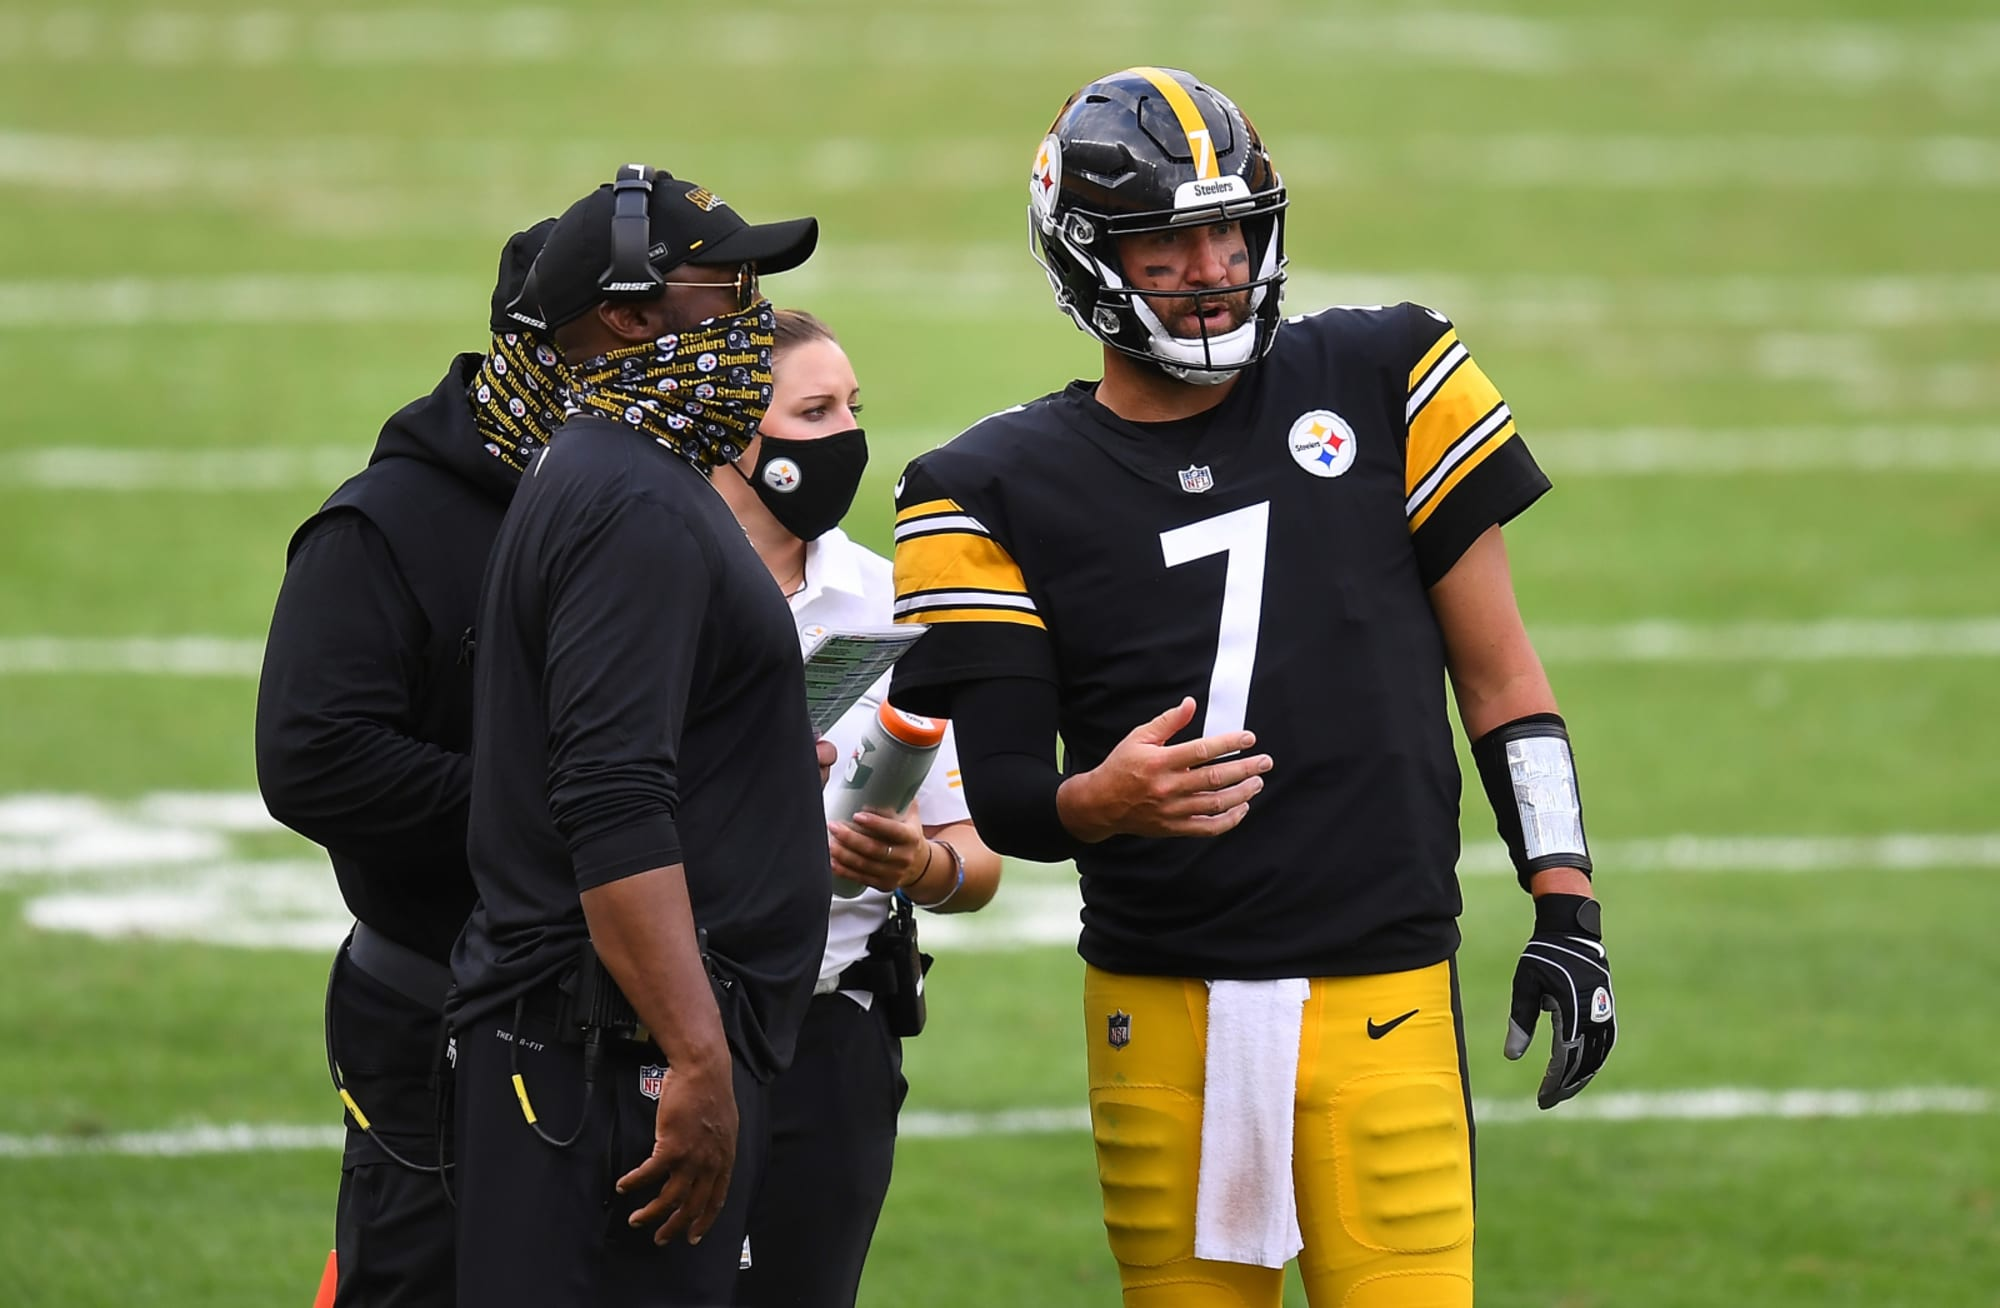 Steelers: Ben Roethlisberger's transition into Matt Canada's offense won't be easy